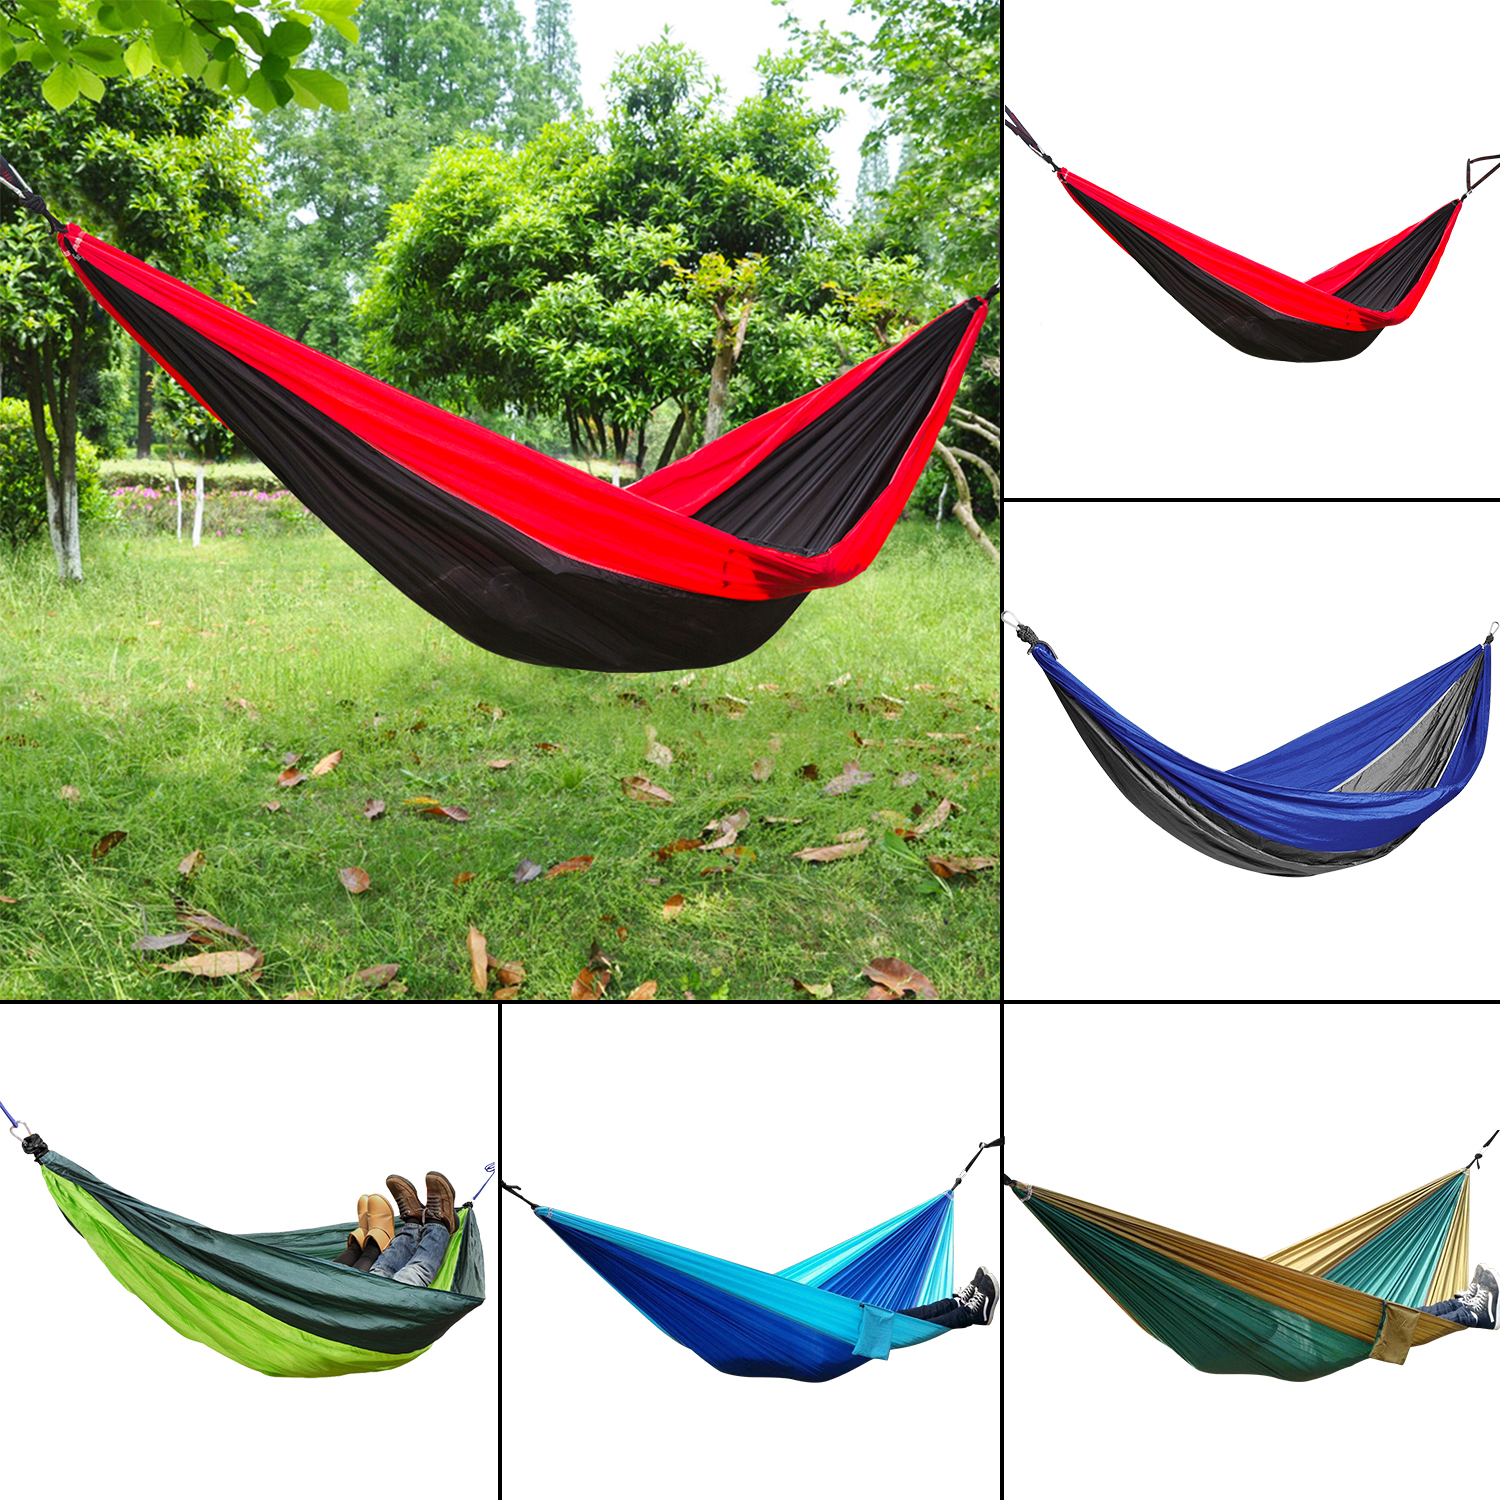 Camping Parachute Nylon Bed Double Person Hammock Travel Sleep Swing Bag New